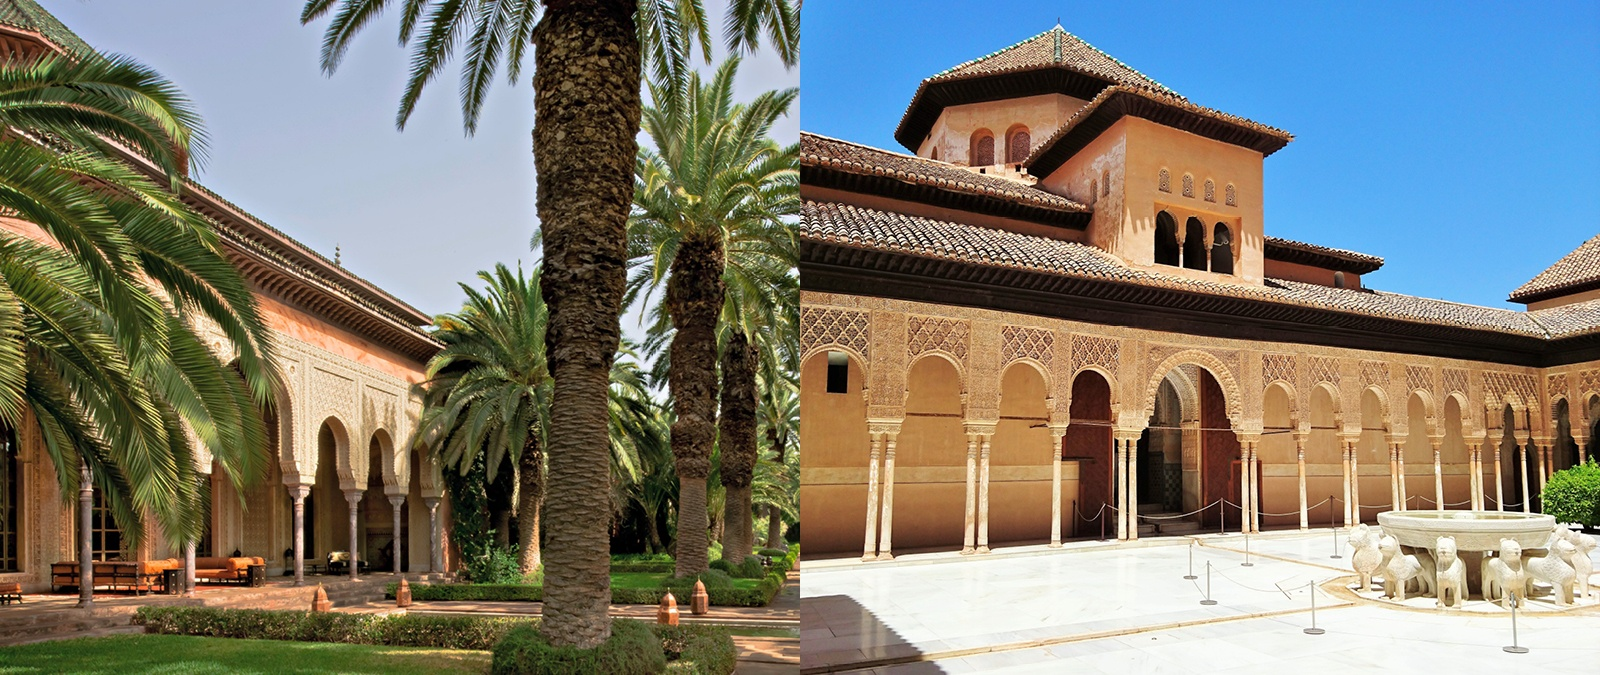 <b><em>Left</em>: <a href=&quot;http://www.christiesrealestate.com/eng/sales/detail/170-l-78232-f1306040421700036/sale-villa-marrakesh-marrakesh-mh-40000&quot;target=&quot;_blank&quot;>Villa Marrakesh</a></br></b>It took 1,300 artisans three years to complete Villa Marrakesh's 59,632-square-foot interior and Moorish-inspired gardens.</br></br><b><em>Right</em>: The Alhambra</br></b>Originally built as a fortress in 889, the Alhambra palace was constructed from the 13th to the 14th century during the reign of the Emirate of Granada. It was deemed a World Heritage site by UNESCO in 1984.